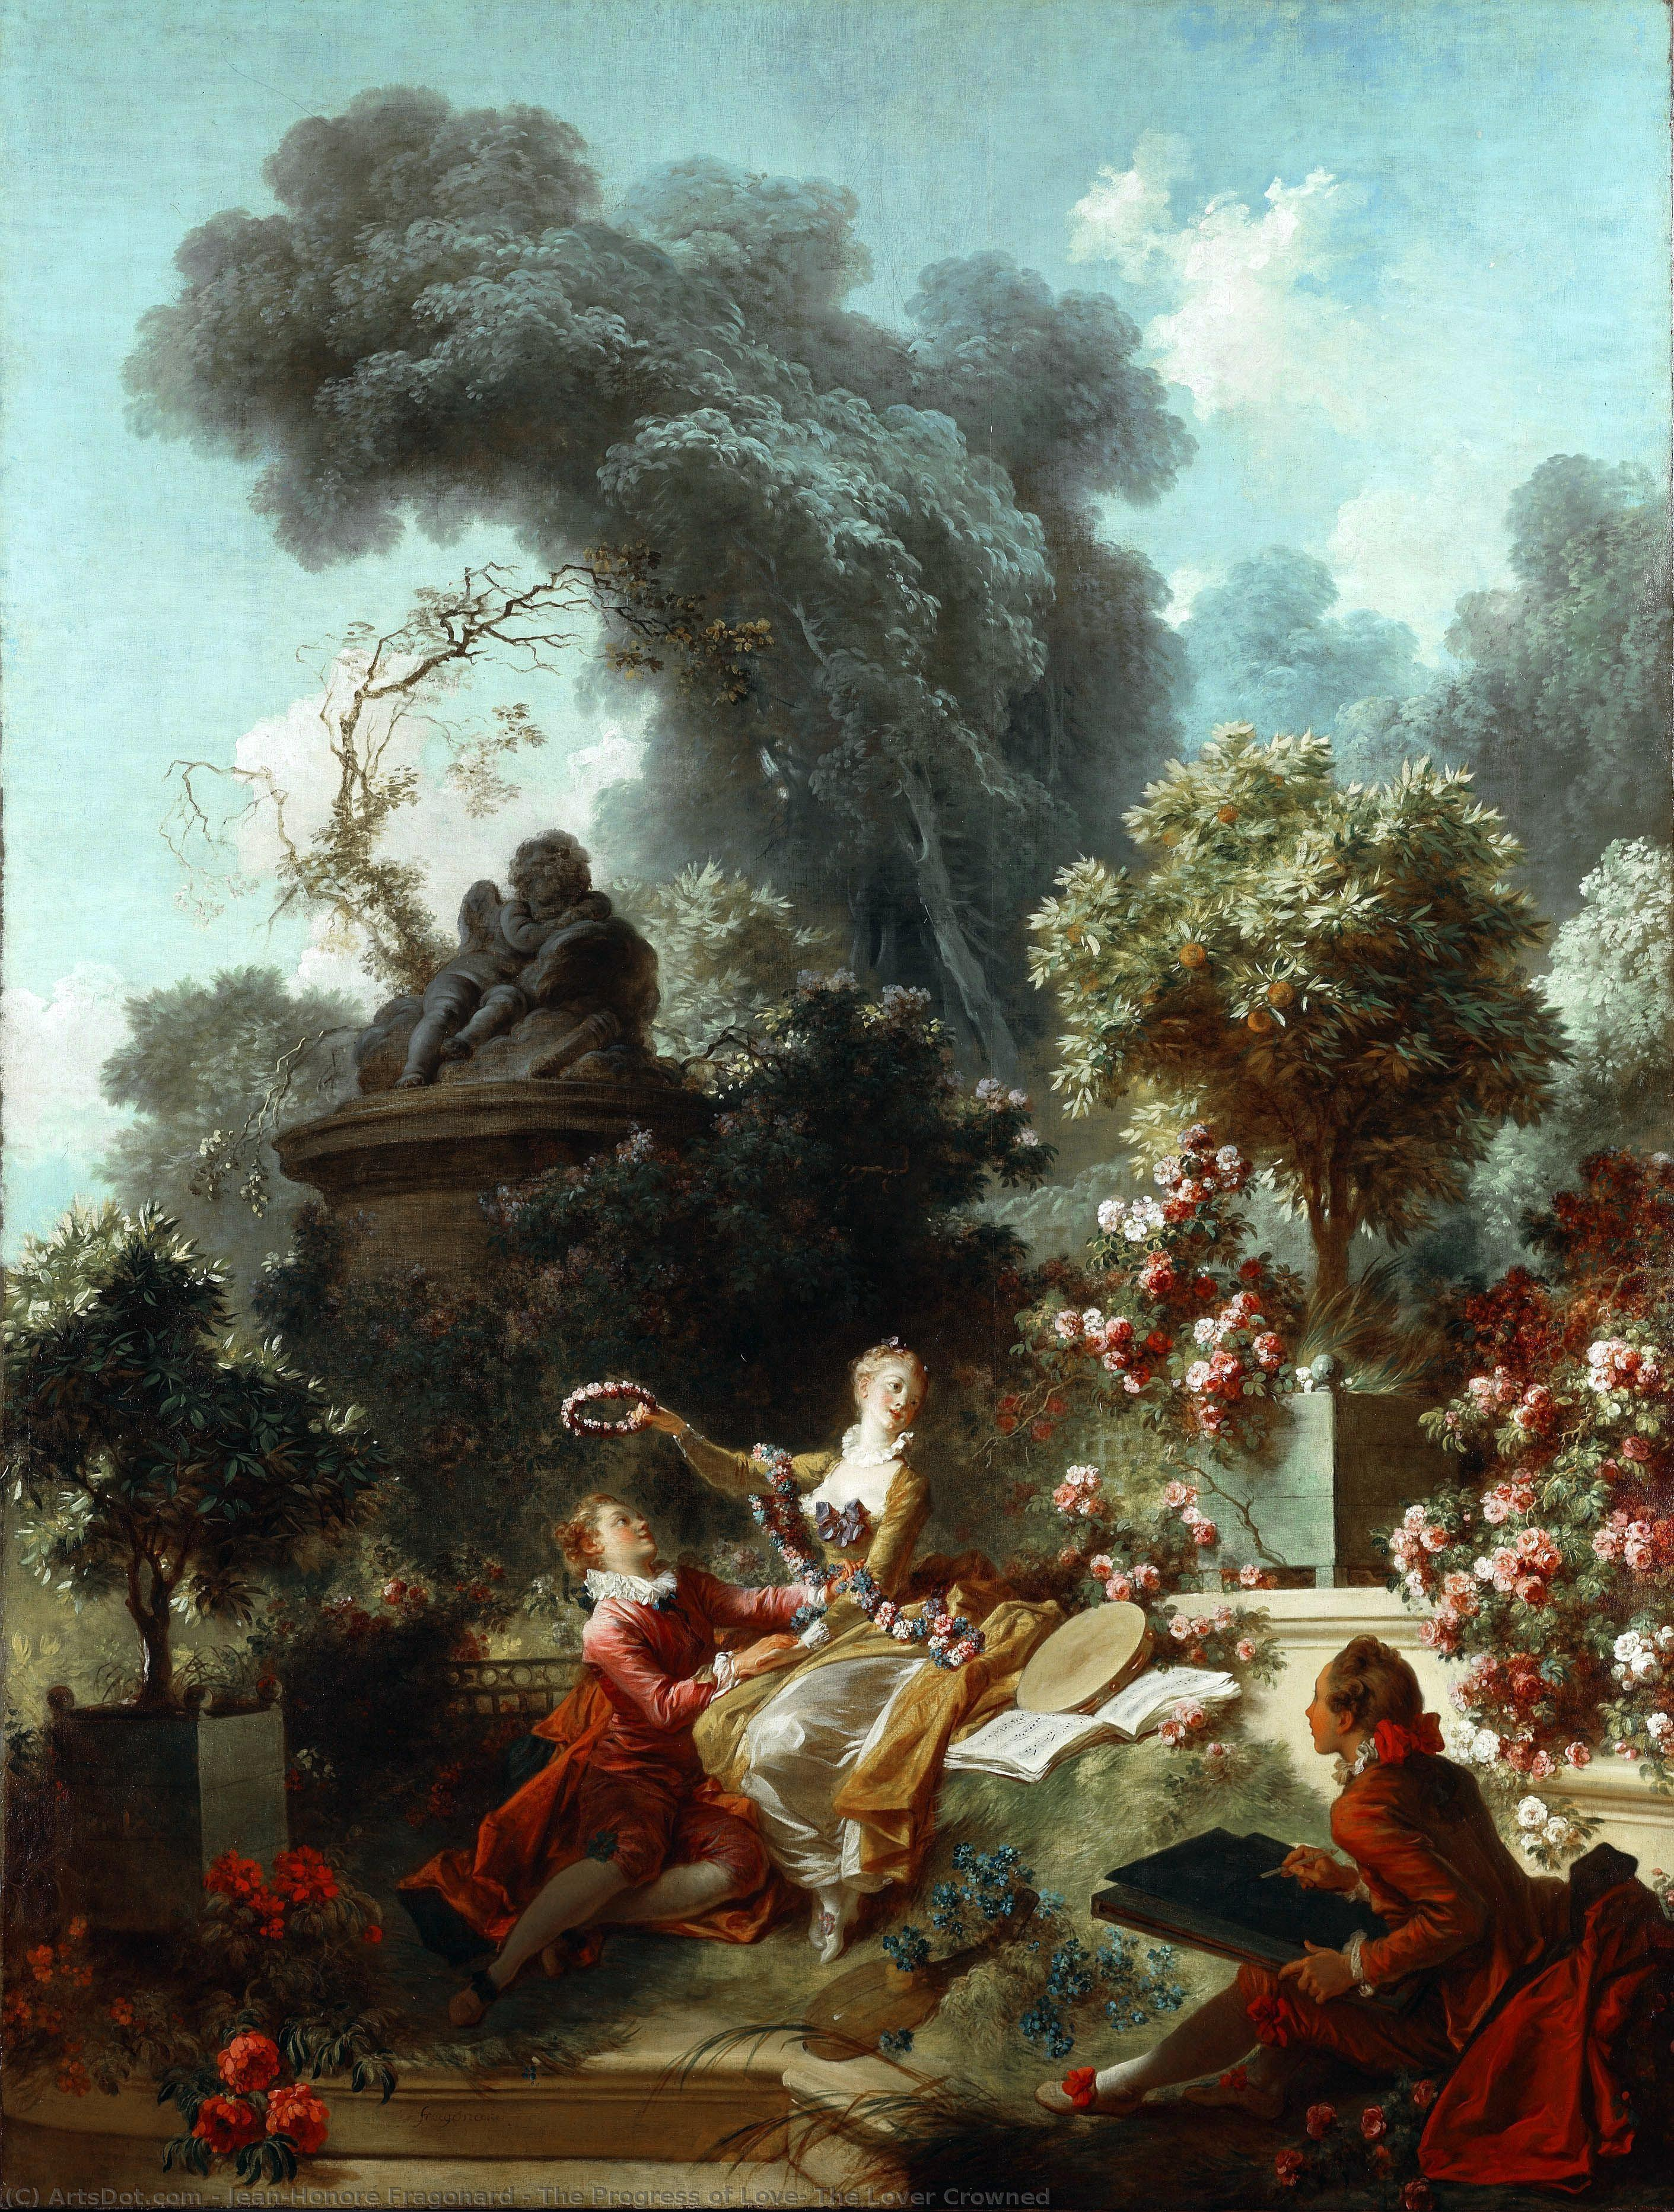 Wikioo.org - The Encyclopedia of Fine Arts - Painting, Artwork by Jean-Honoré Fragonard - The Progress of Love: The Lover Crowned